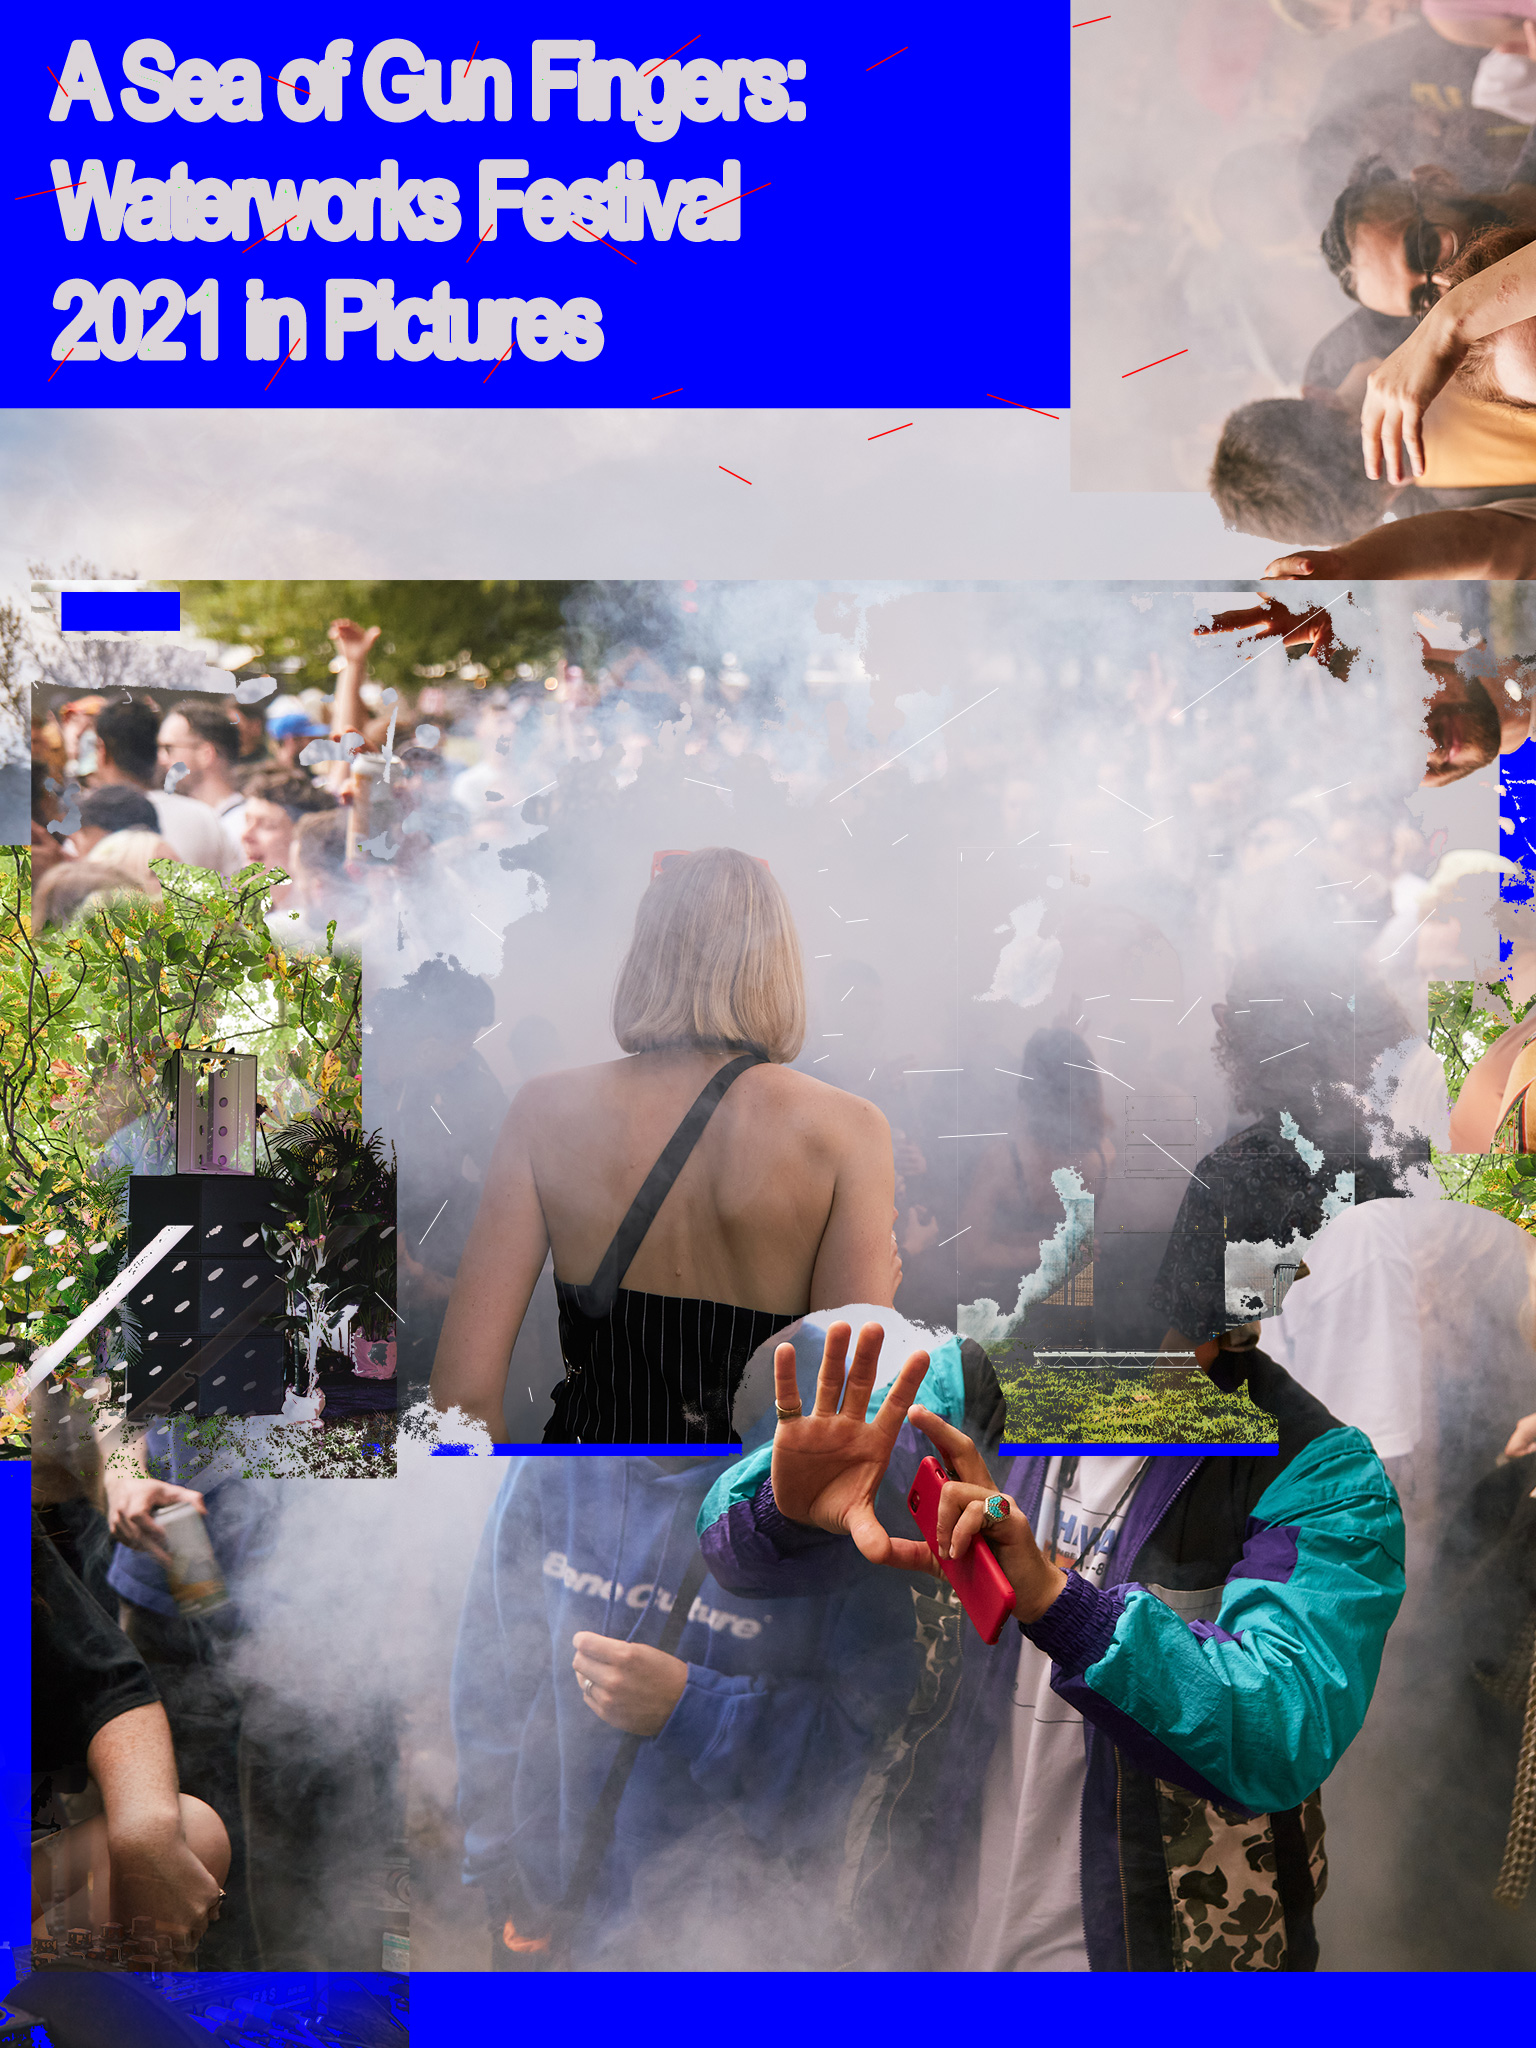 A Sea of Gun Fingers: Waterworks Festival 2021 in Pictures